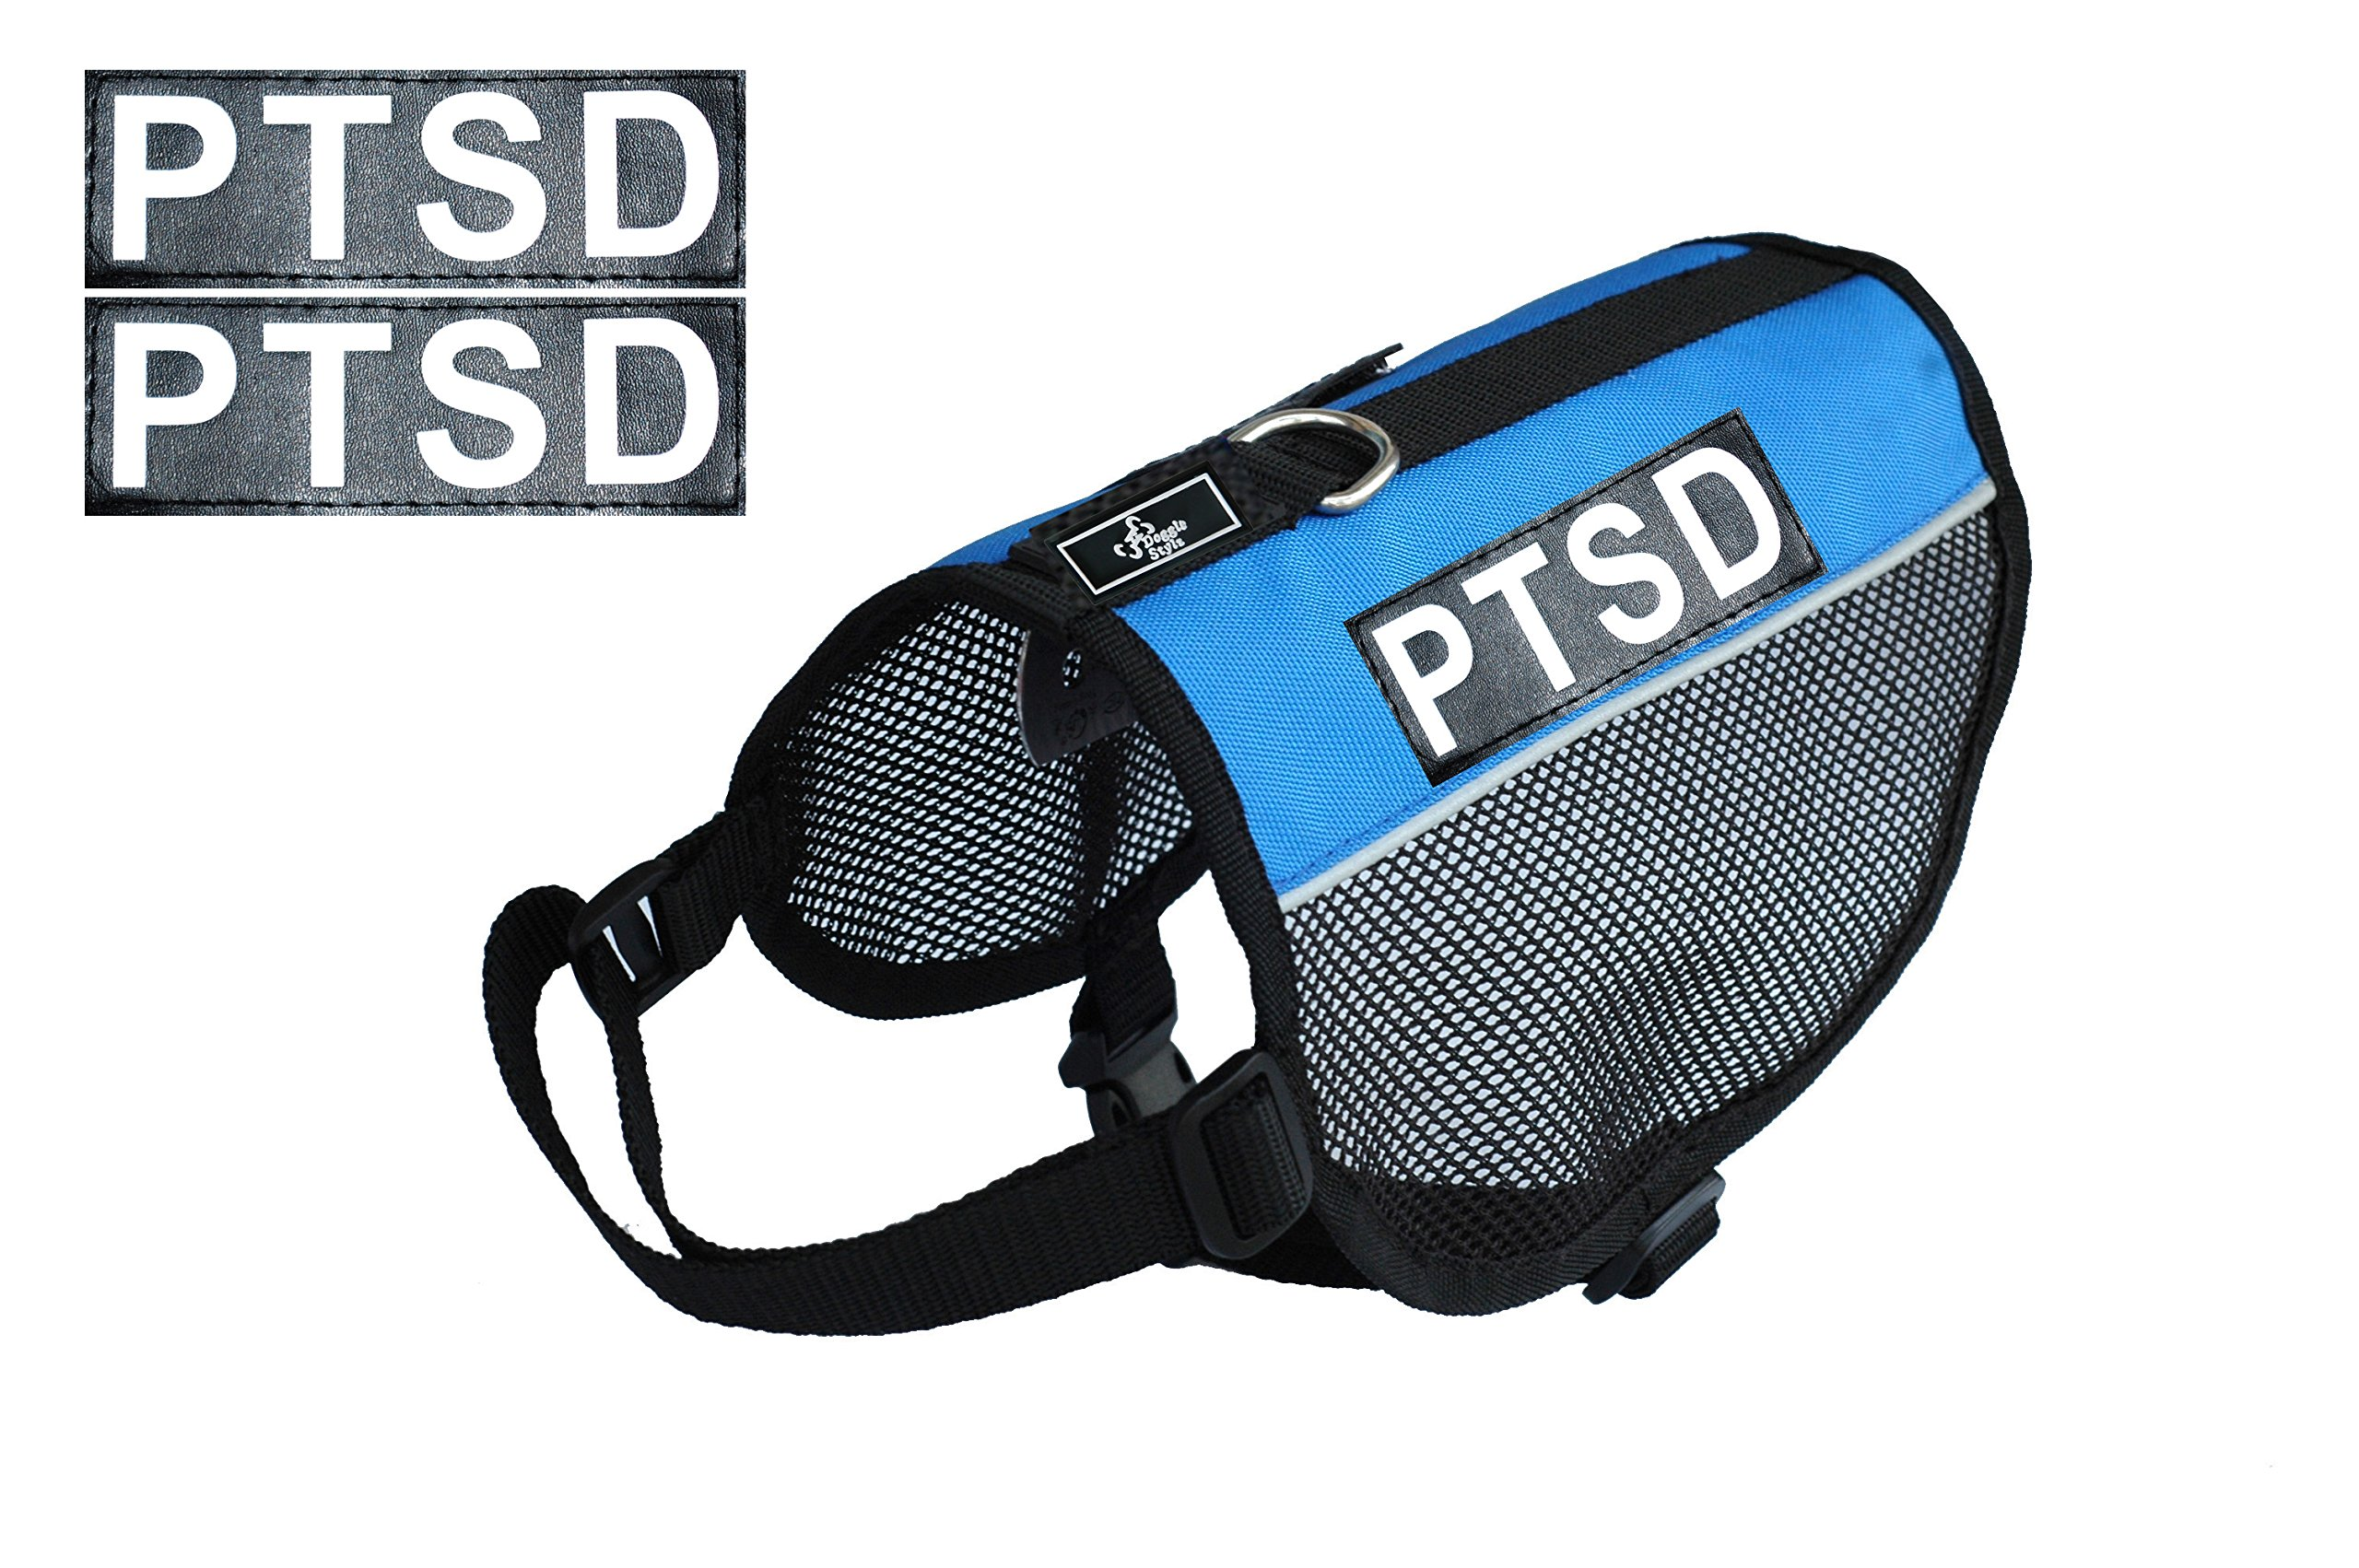 PTSD Service Dog mesh Vest Harness Cool Comfort Nylon for Dogs Small Medium Large Purchase Comes with 2 Reflective PTSD pathces. Please Measure Your Dog Before Ordering